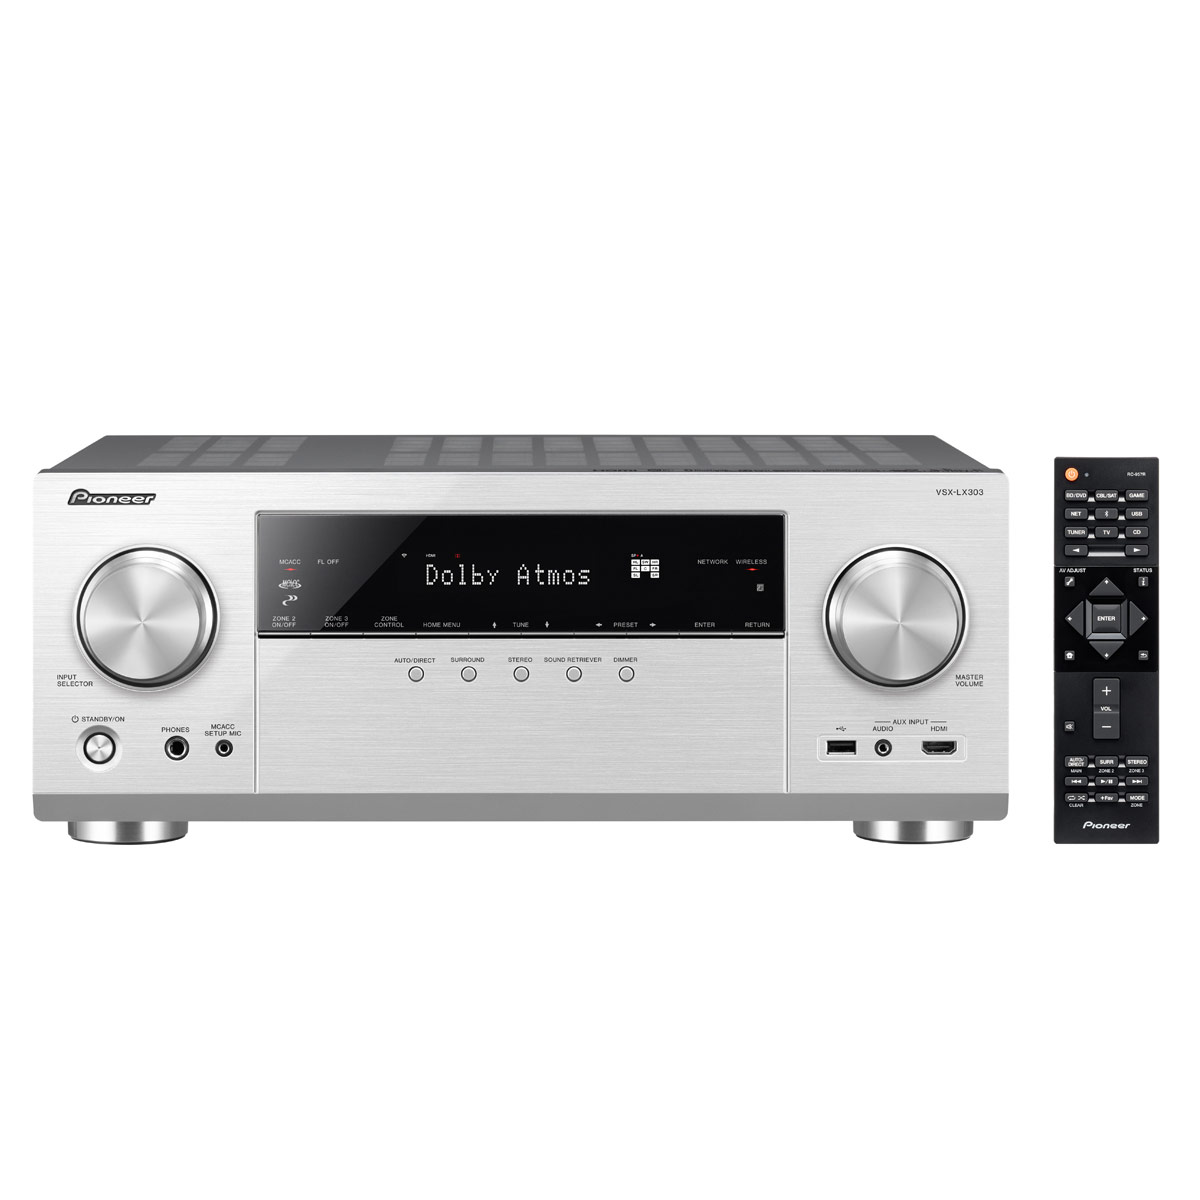 Ampli home cinéma Pioneer VSX-LX303 Argent Ampli-tuner Home Cinéma 9.2 170 Watts Multiroom, Dolby Atmos, DTS:X, HDMI 4K UHD, HDCP 2.2, HDR, Hi-Res Audio, Wi-Fi Dual Band, Bluetooth, Chromecast, DTS Play-Fi, AirPlay